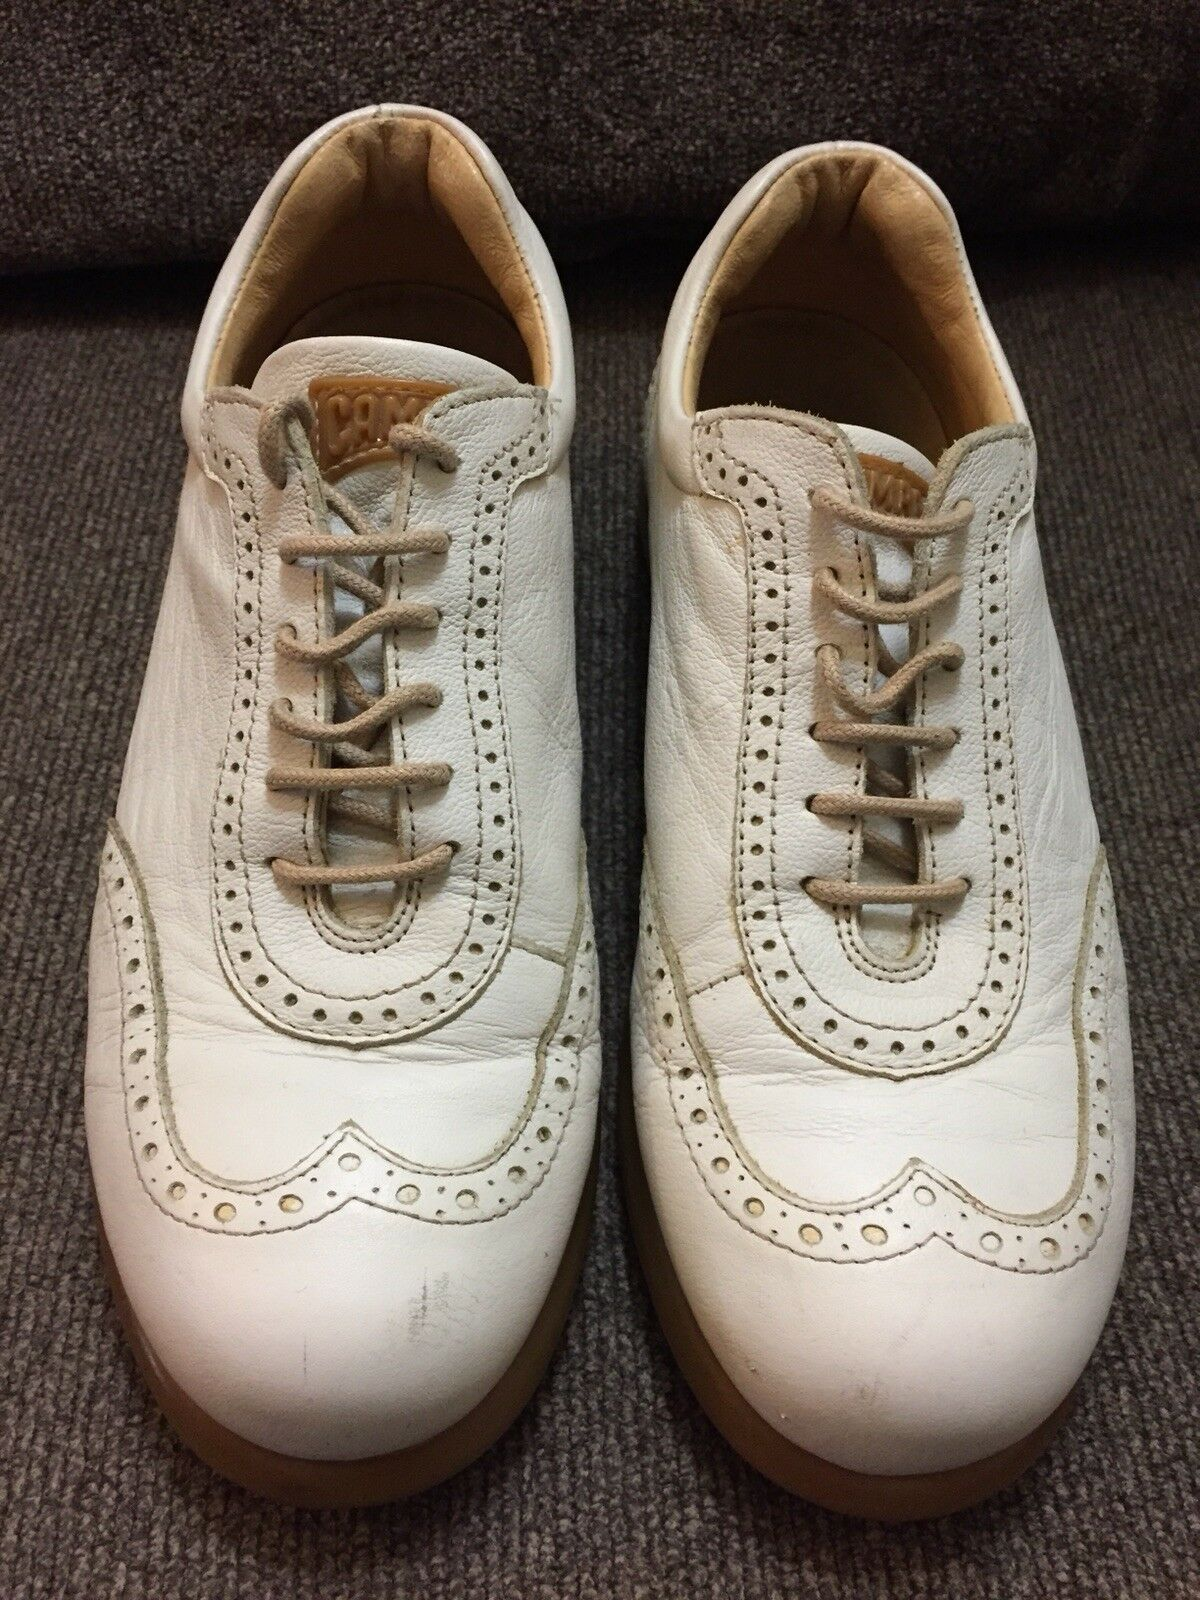 838337ec8595d Camper 100% Women Off White White White Lace Up Wingtip shoes Size ...